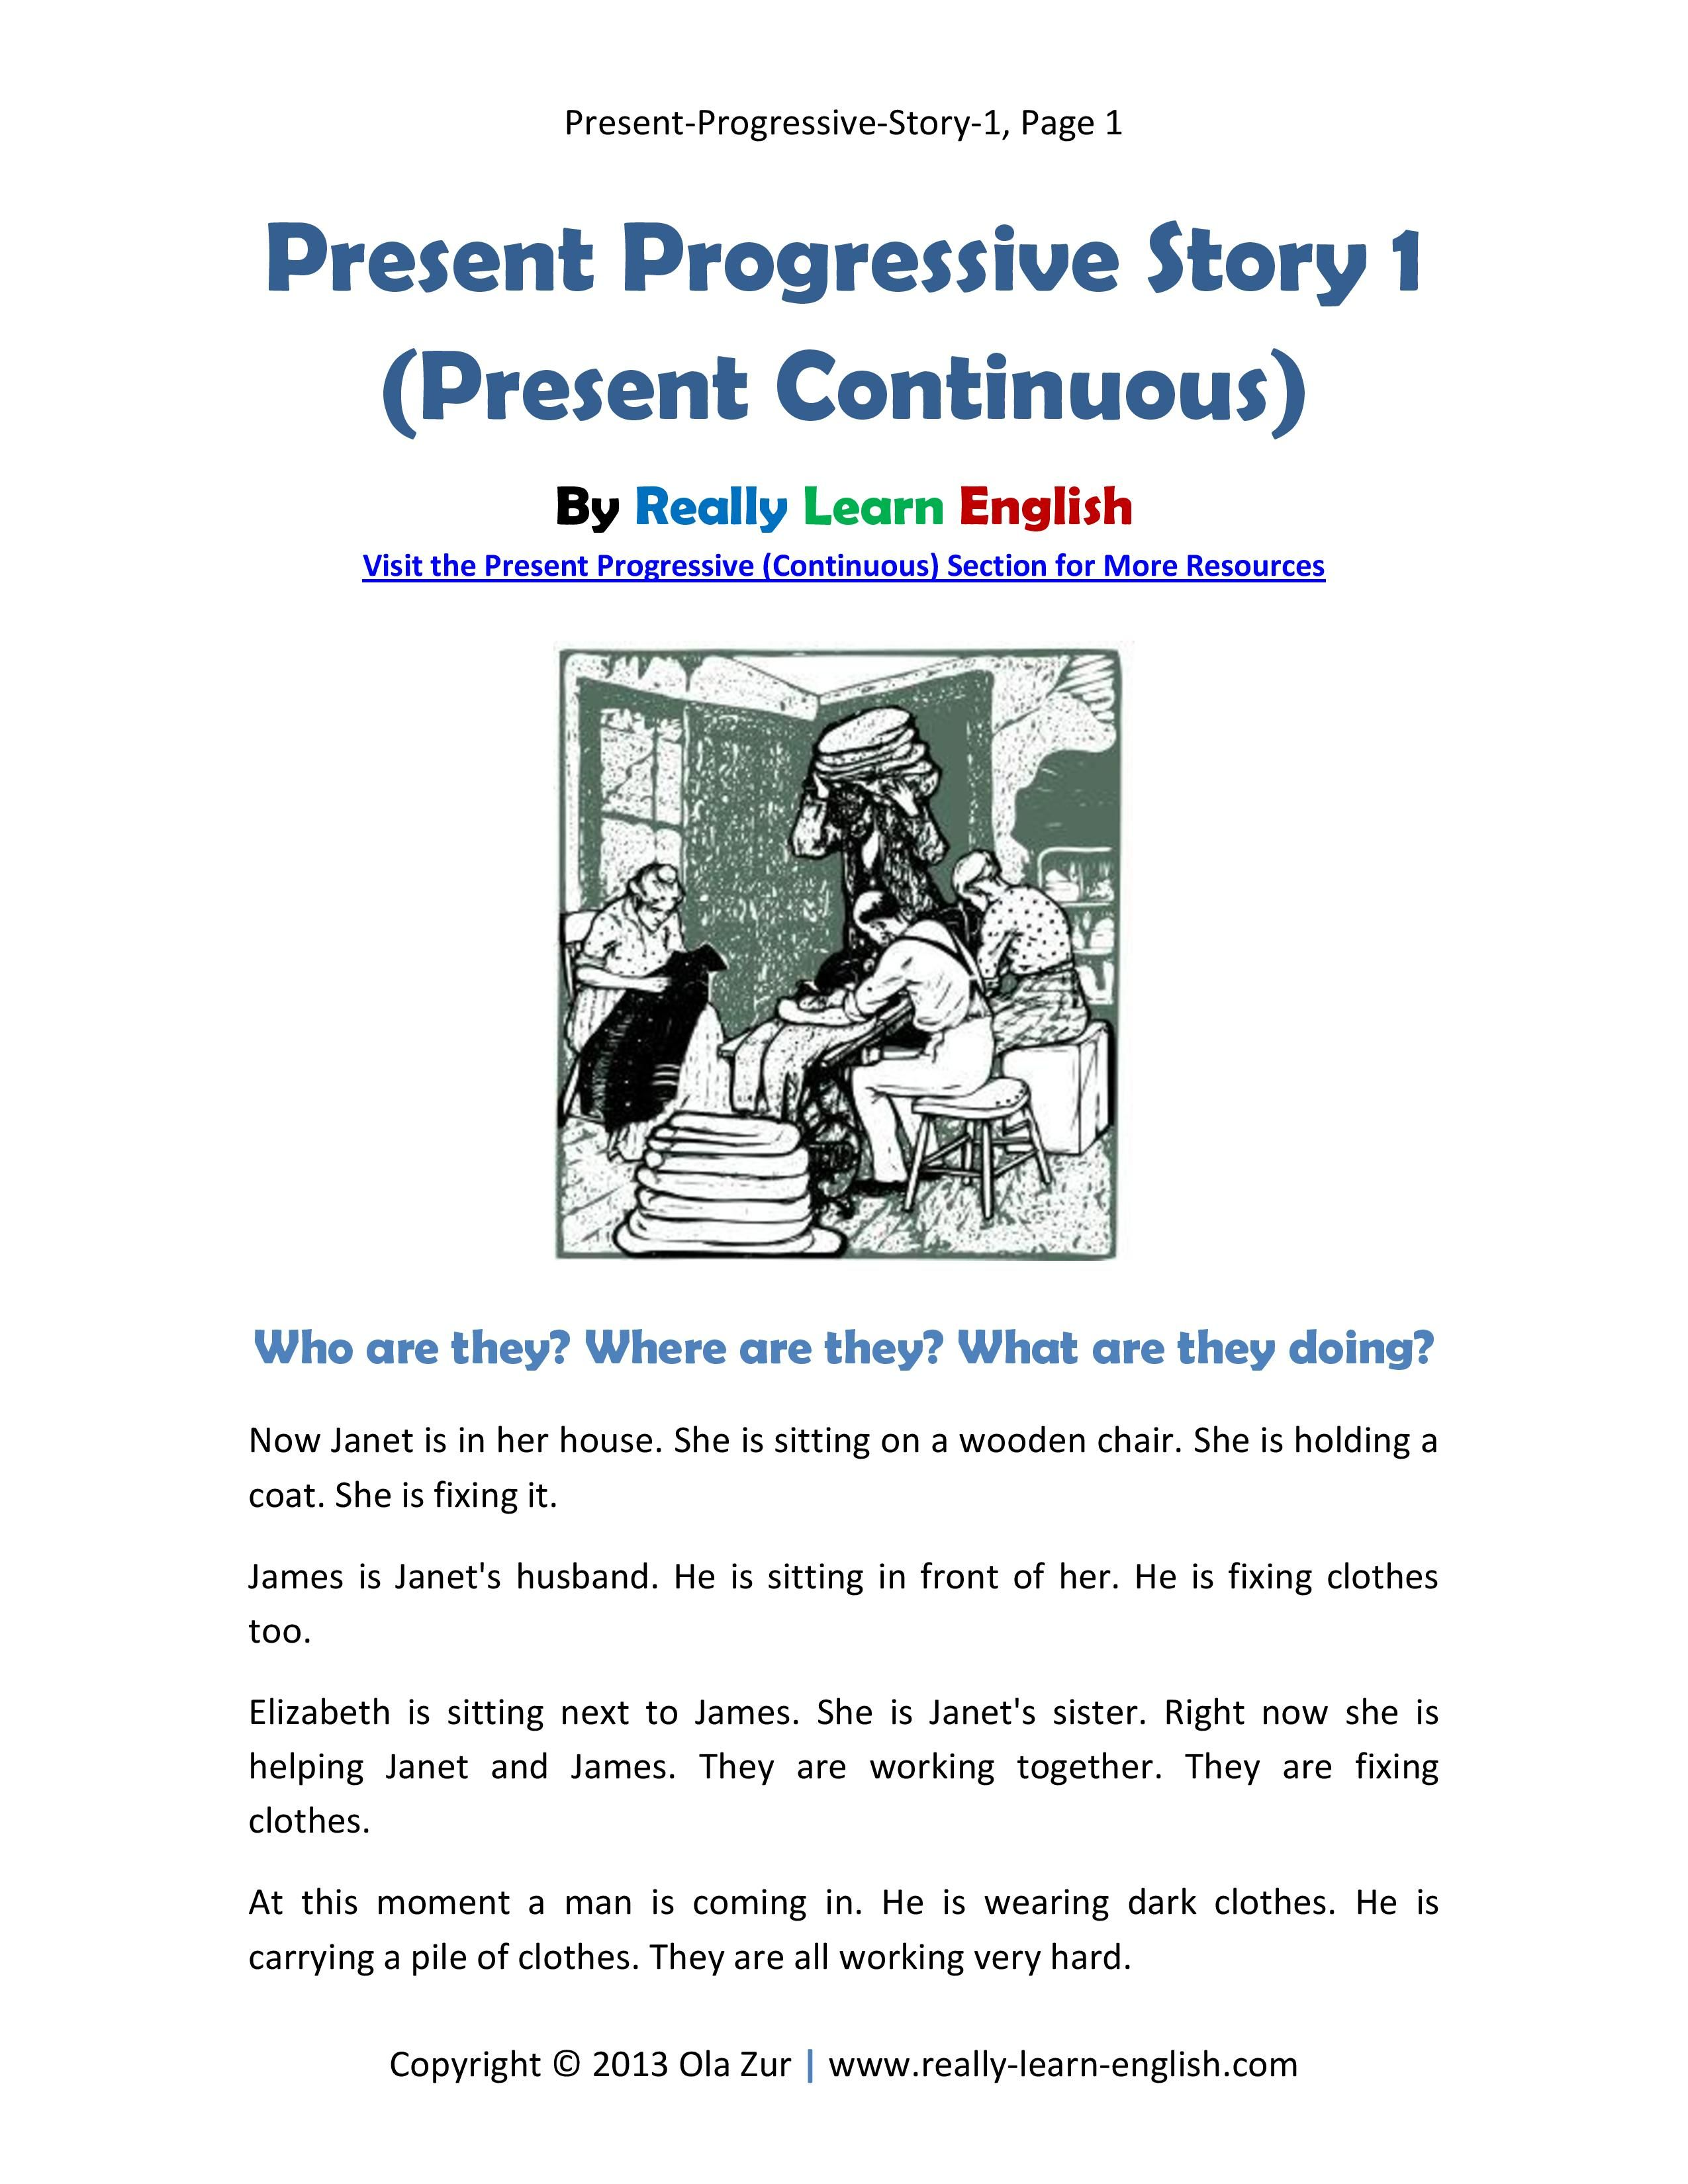 Free Printable Story And Exercises To Practice The Present